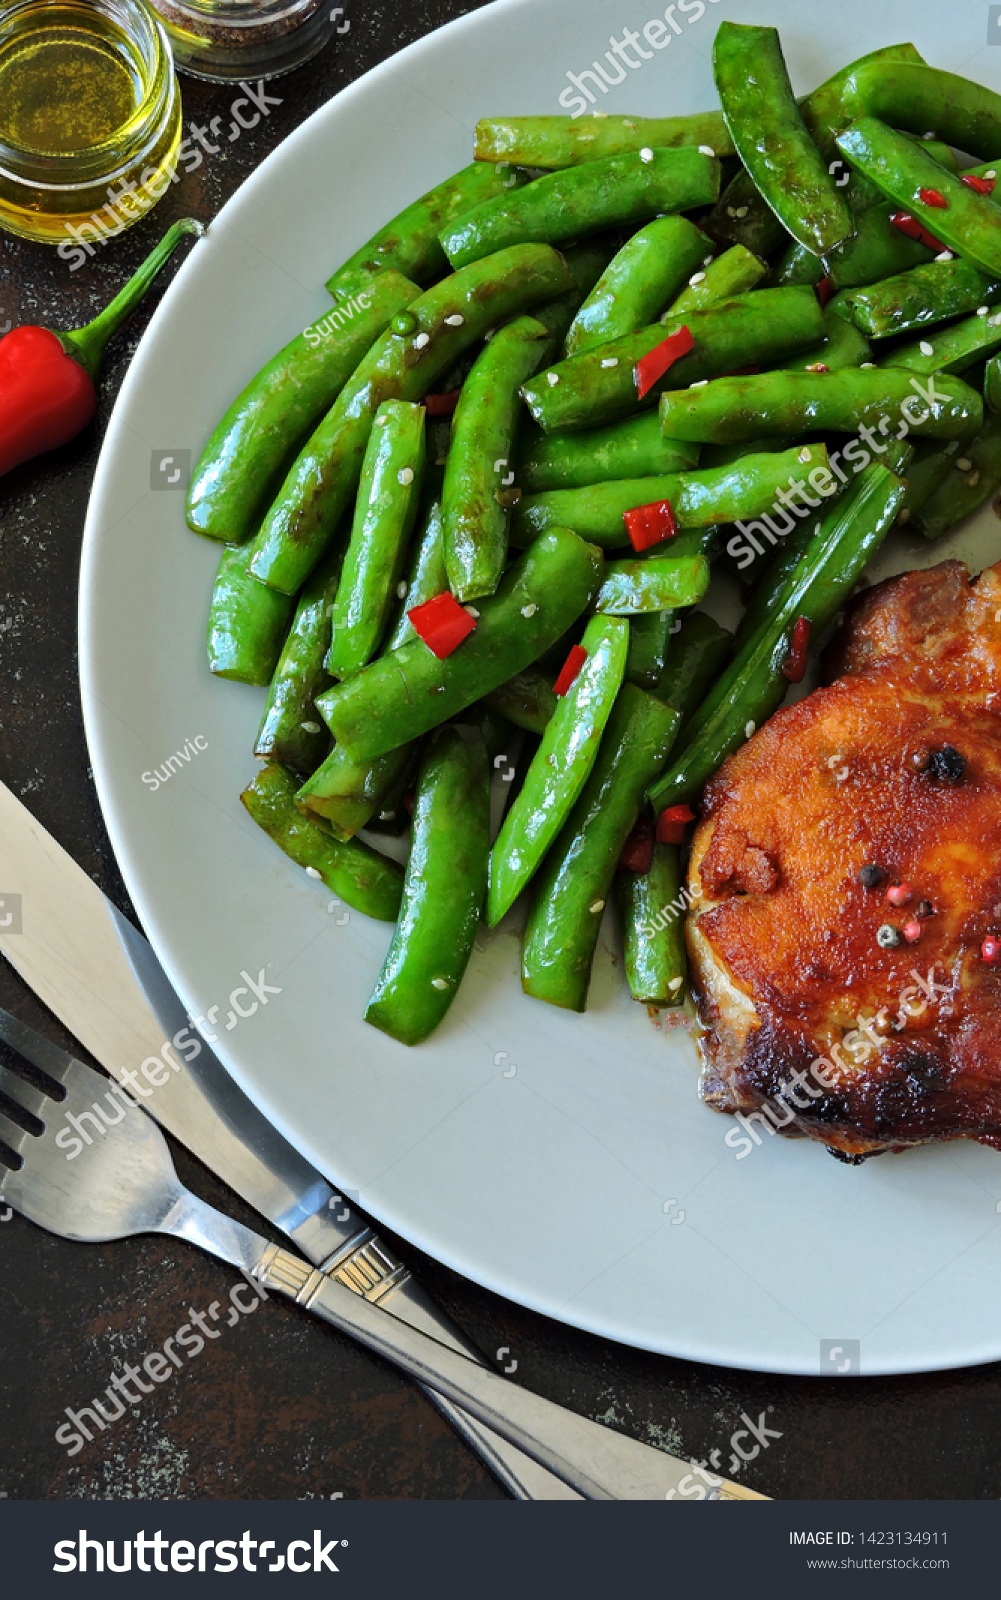 Green pea pods and pork steak on a plate. Balanced nutrition concept. Keto diet. Paleo diet. Pegan Diet. #1423134911